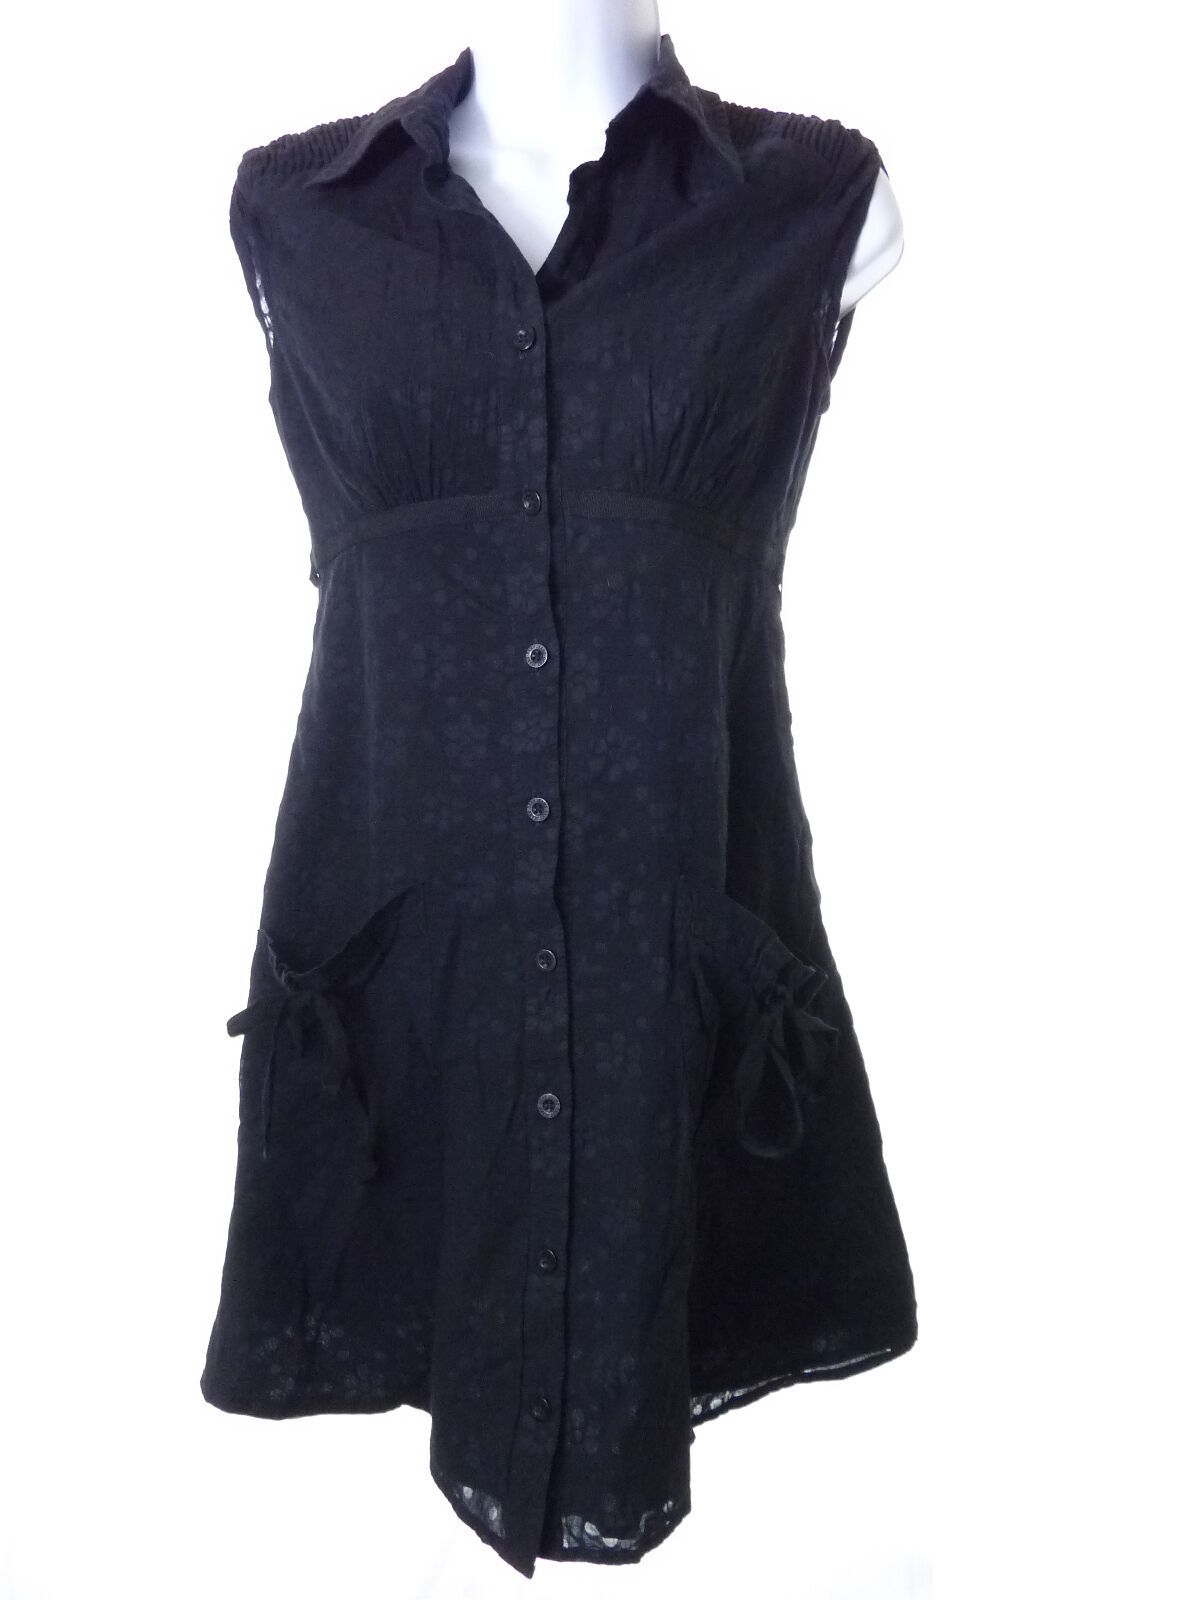 DKNY Jeans Black on Black Shirt Dress Size Small S